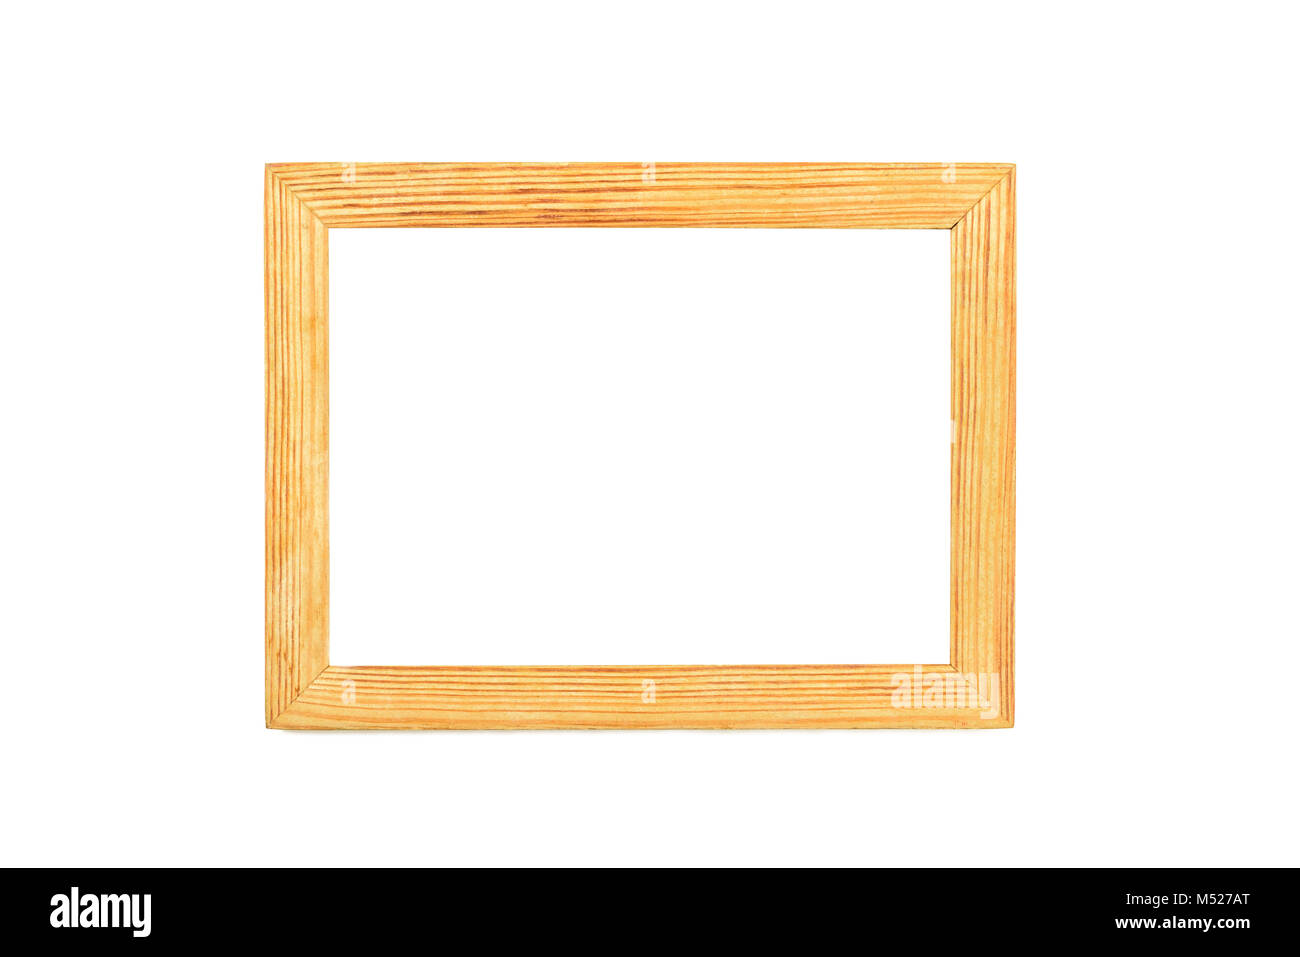 Simple wooden photo frame - Stock Image